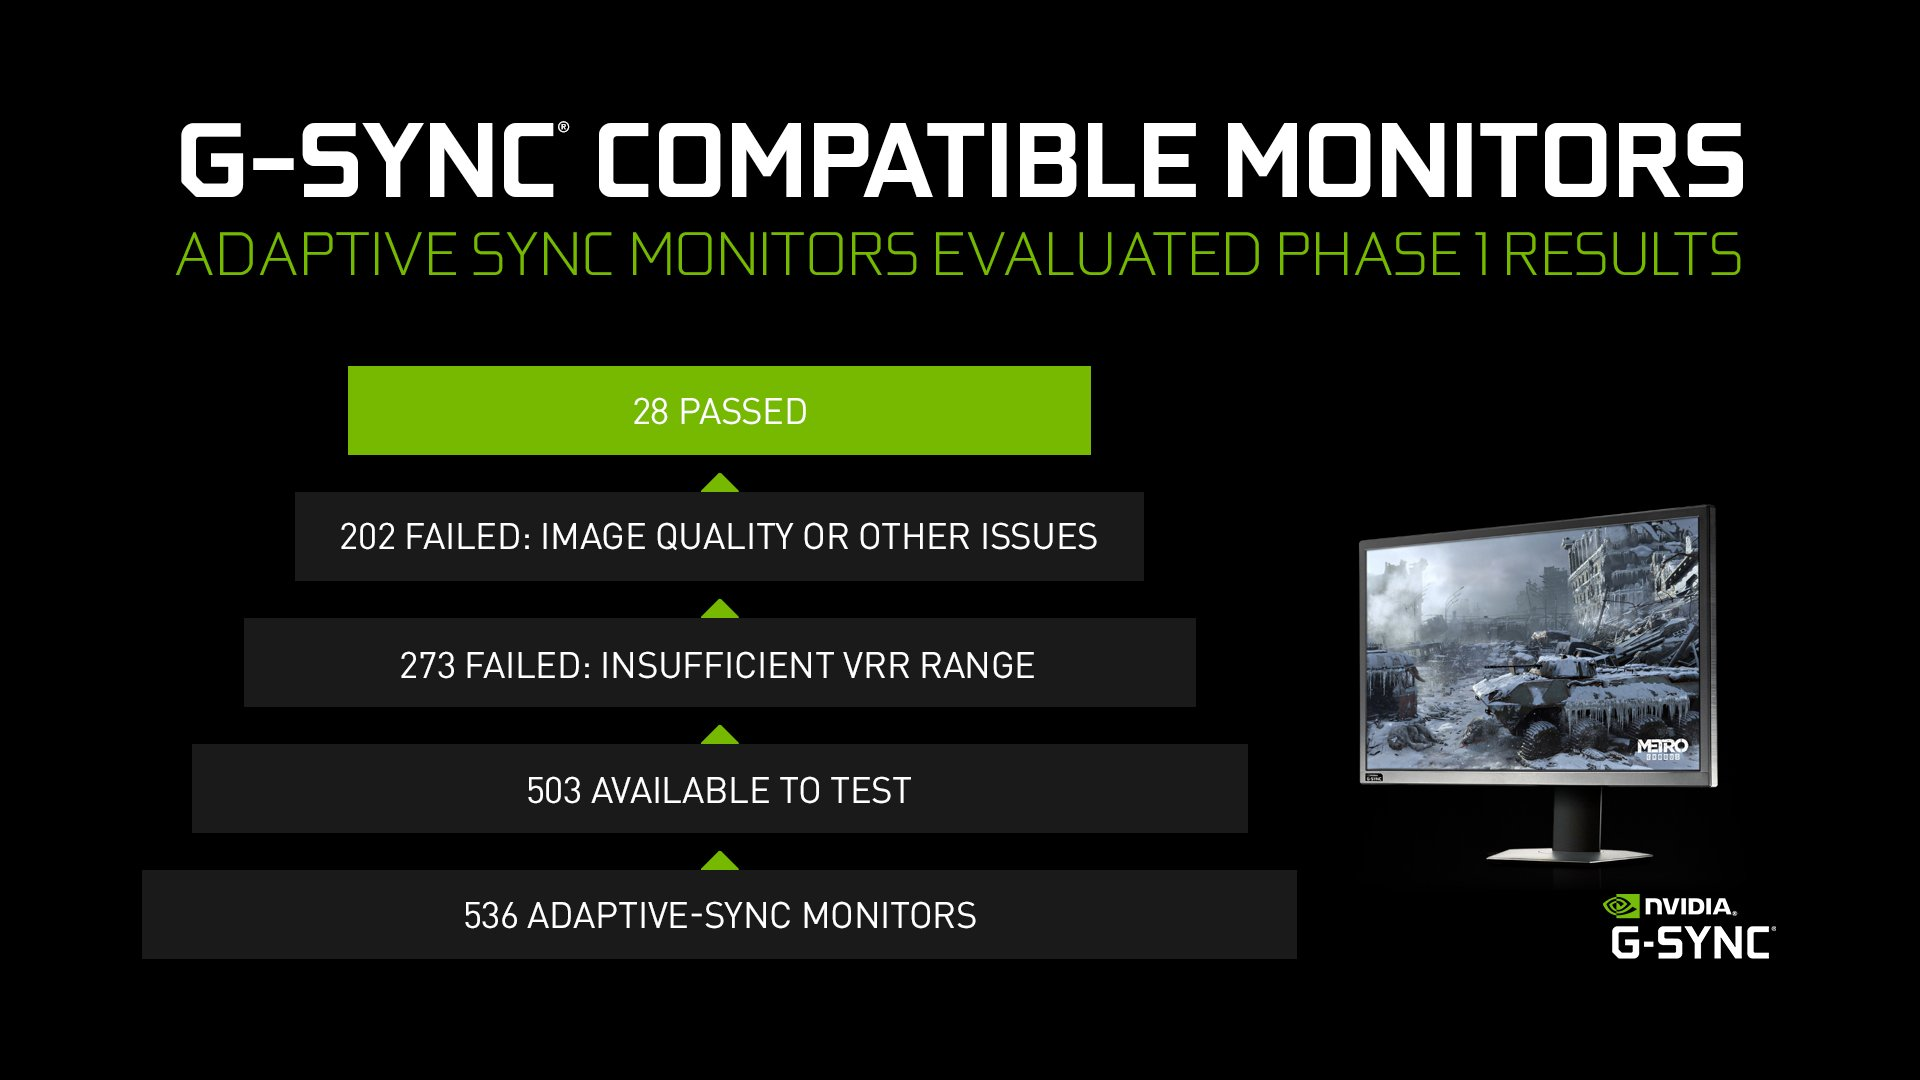 """Only 5% of Adaptive-Sync Monitors made the cut"" says Nvidia"